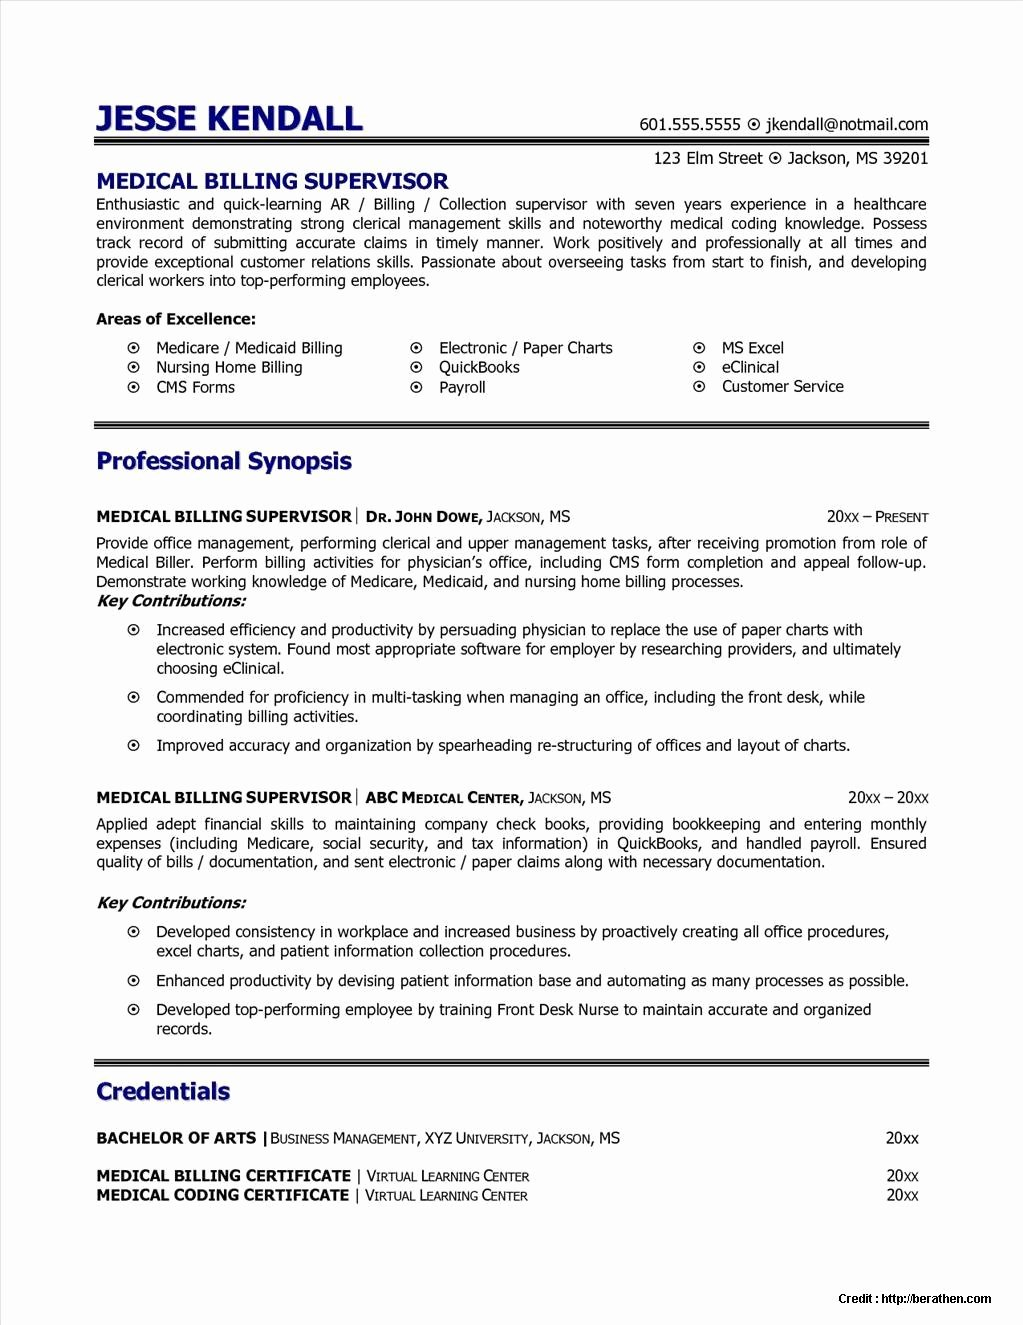 Resume for Medical Billing Job Resume Resume Examples